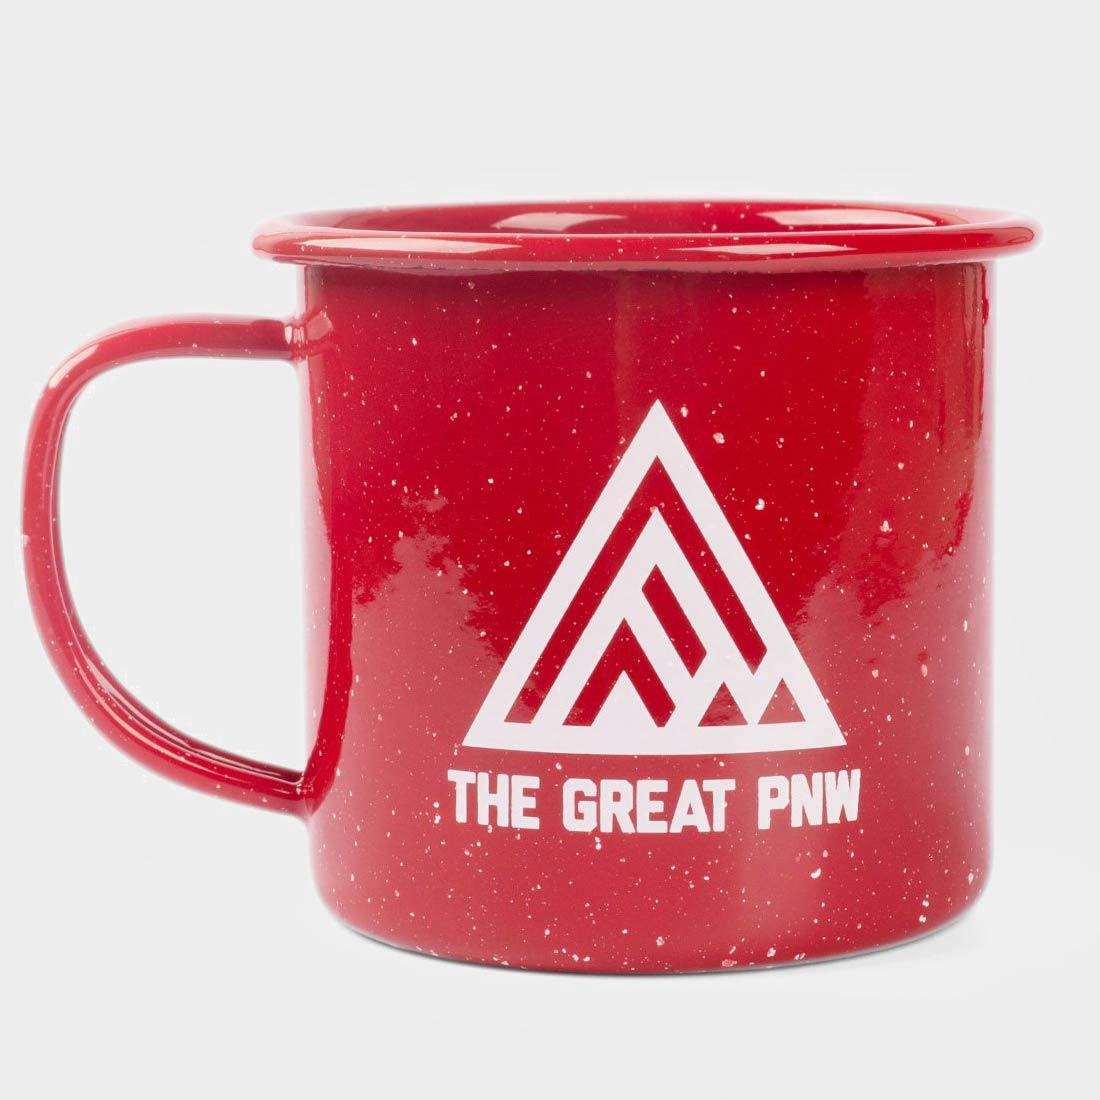 The Great PNW Weekend Enamel Mug Red